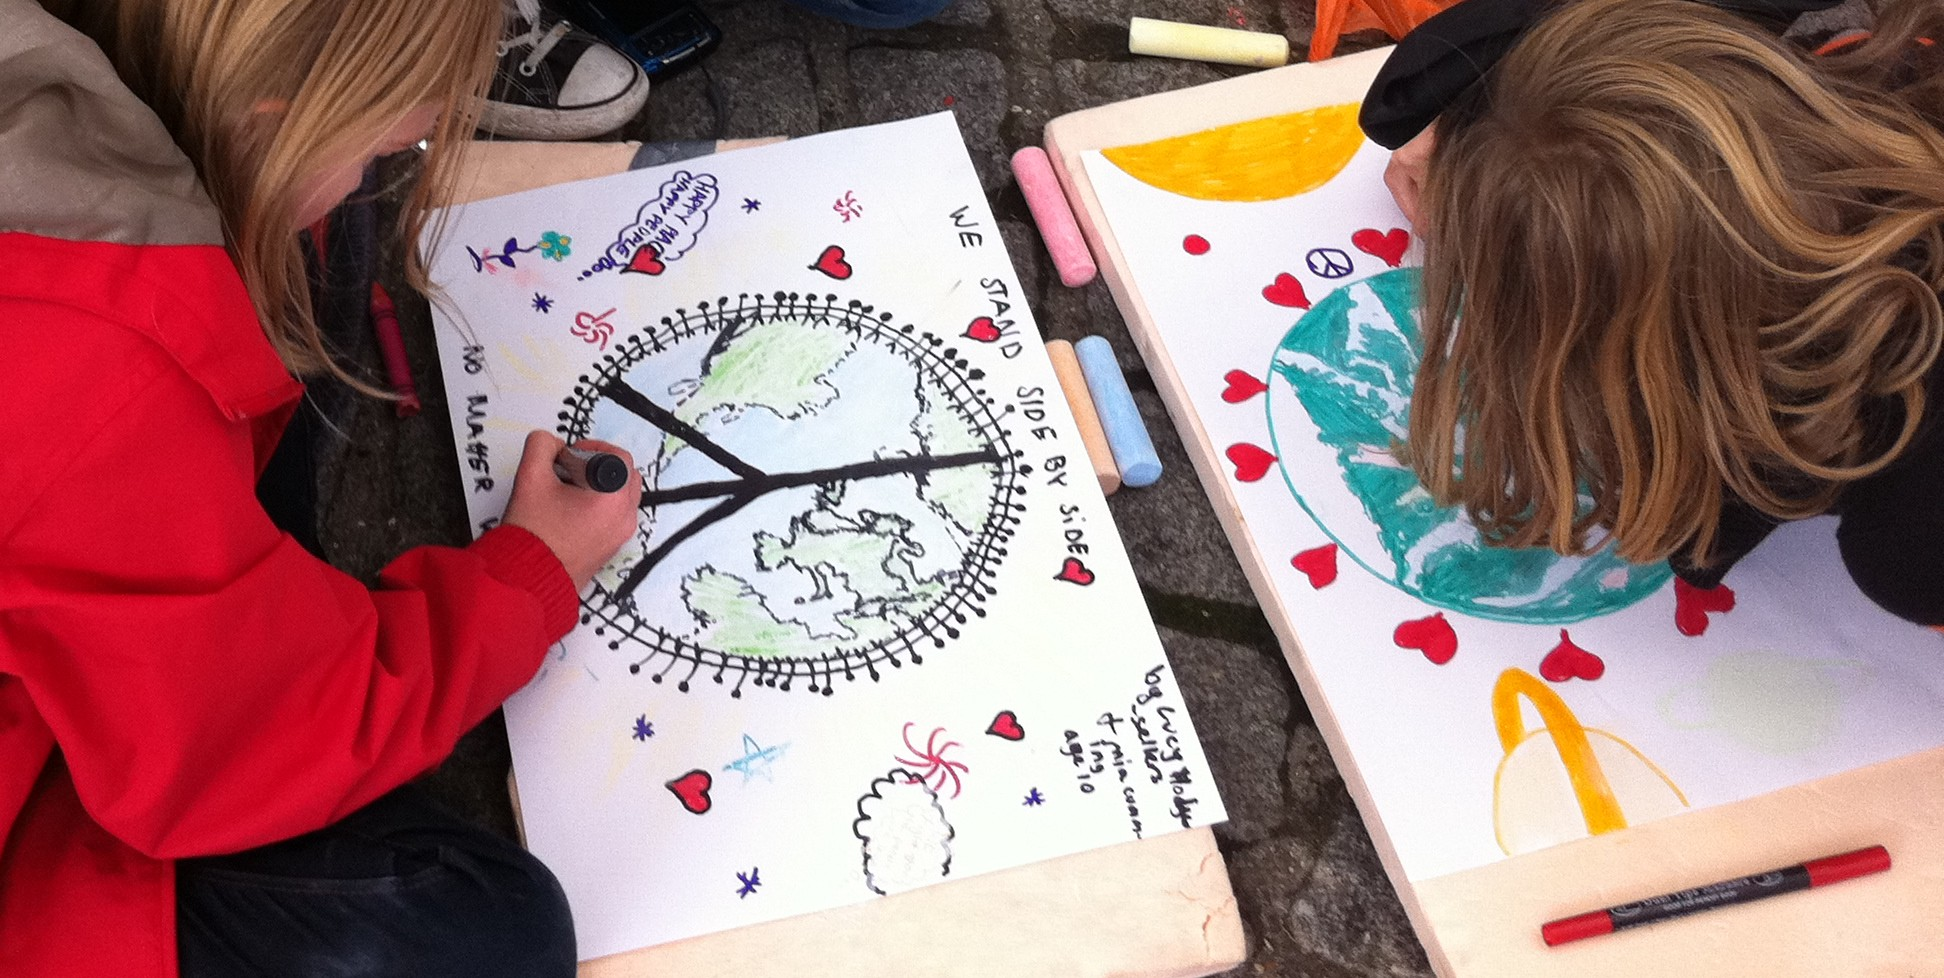 We held family fun days at Occupy with arts and crafts and  a bouncy castle